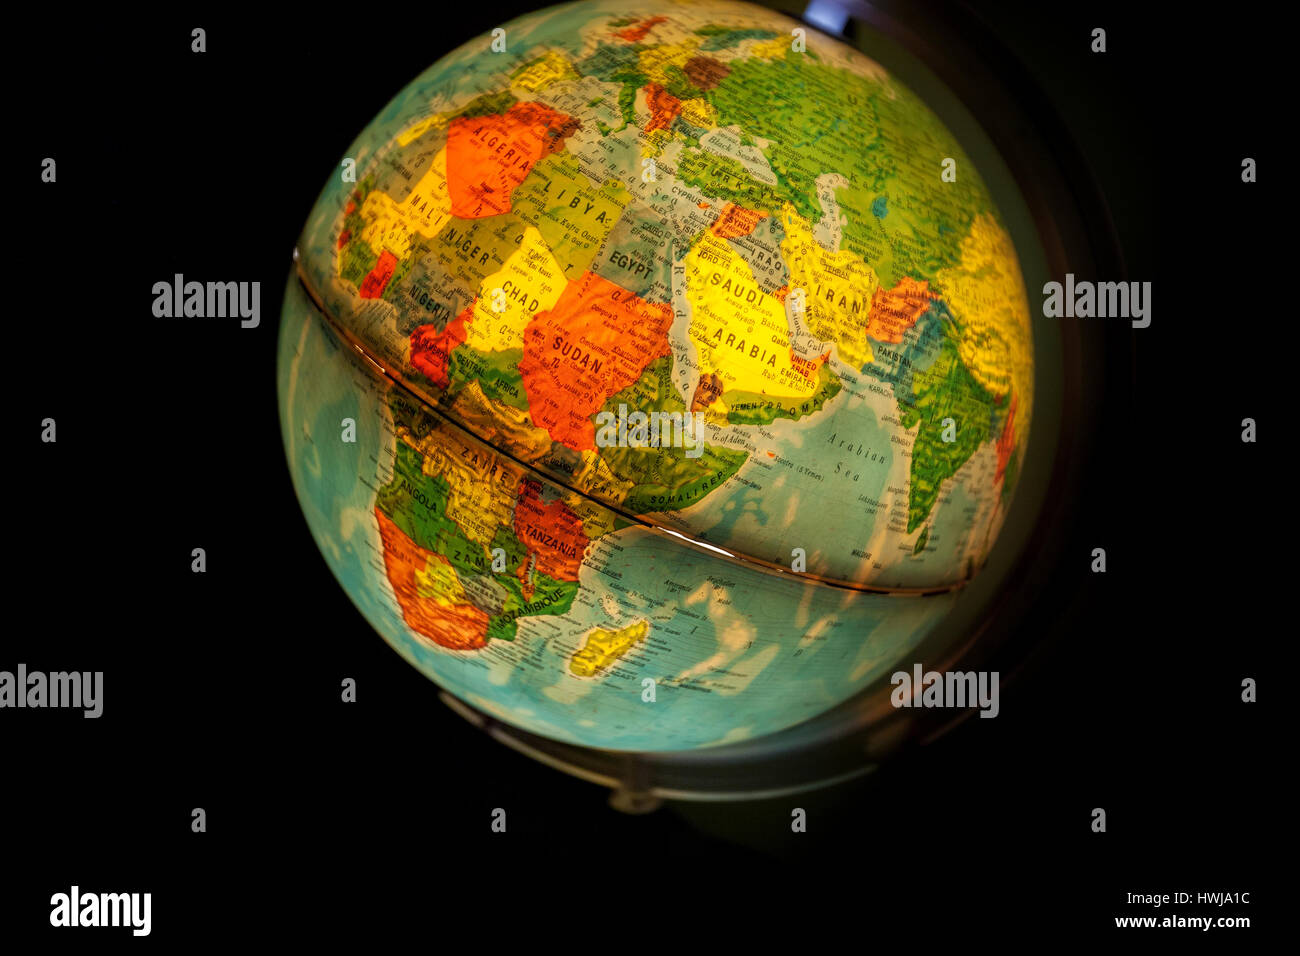 Close up of old fashioned world globe a ball shaped map lit from close up of old fashioned world globe a ball shaped map lit from within focusing on south africa and antartic gumiabroncs Images